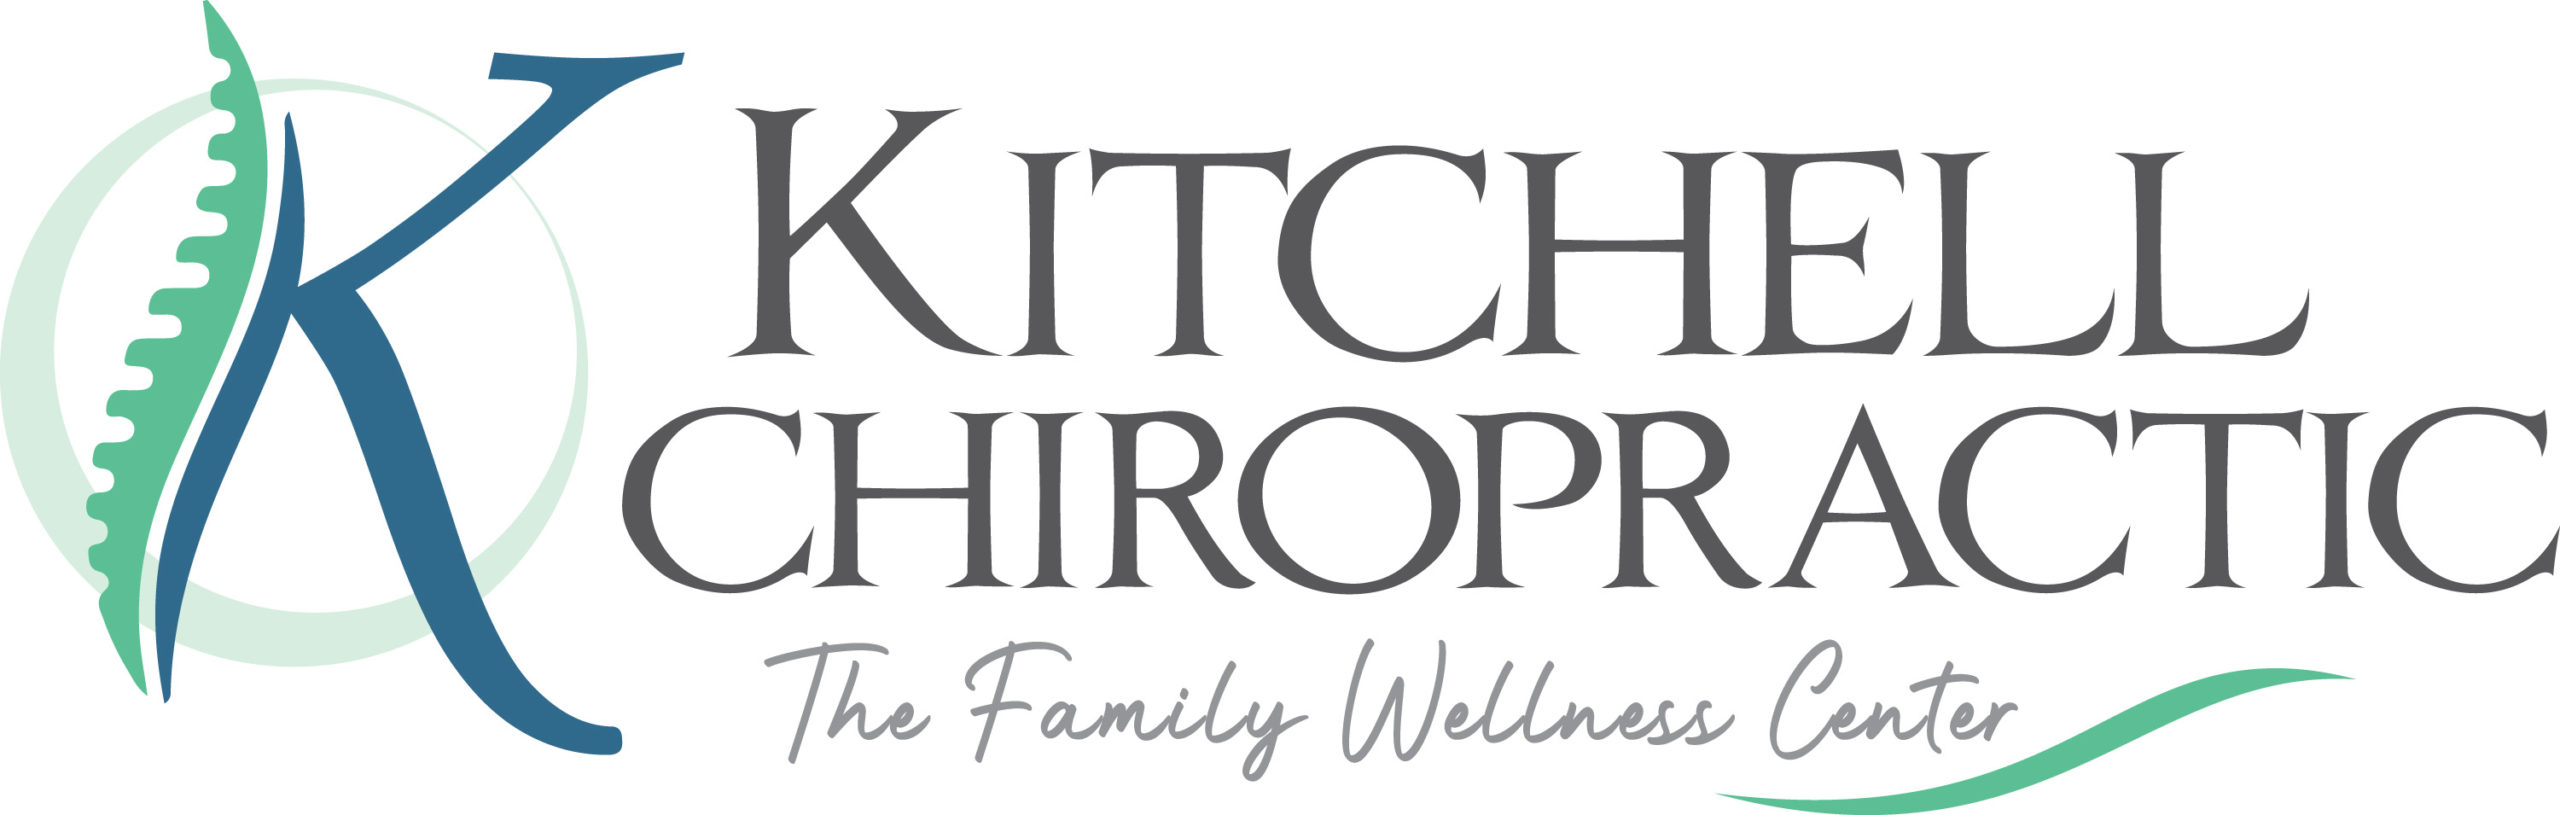 Kitchell Chiropractic